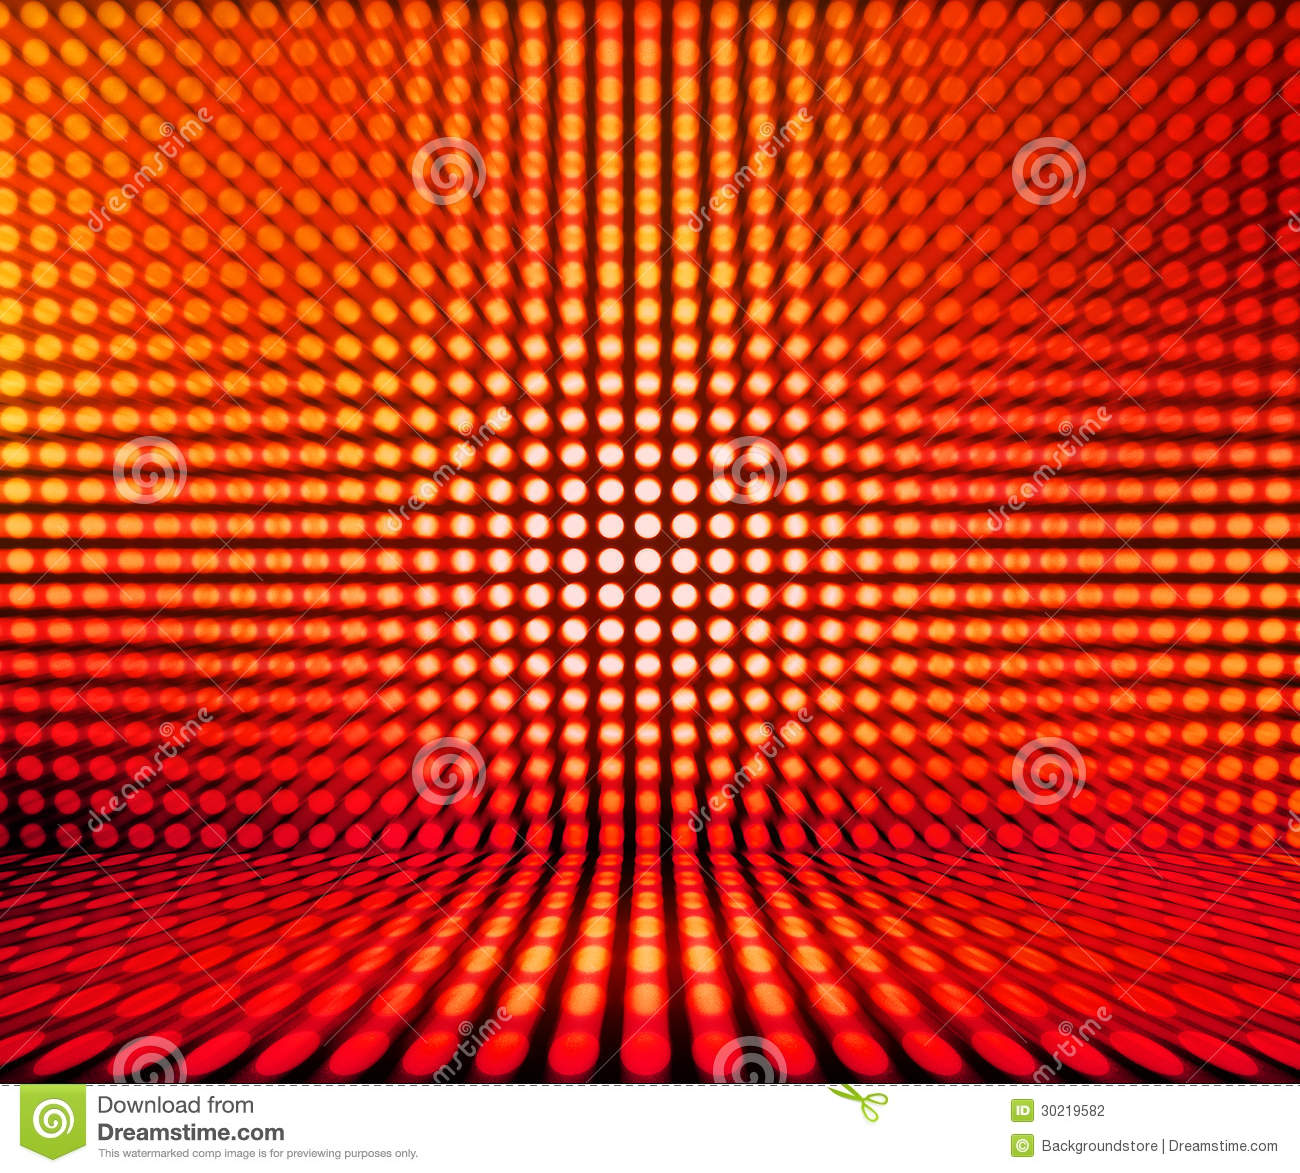 Red Leds Light Stage Background Stock Illustration - Illustration of ... for Red Led Light Texture  45jwn